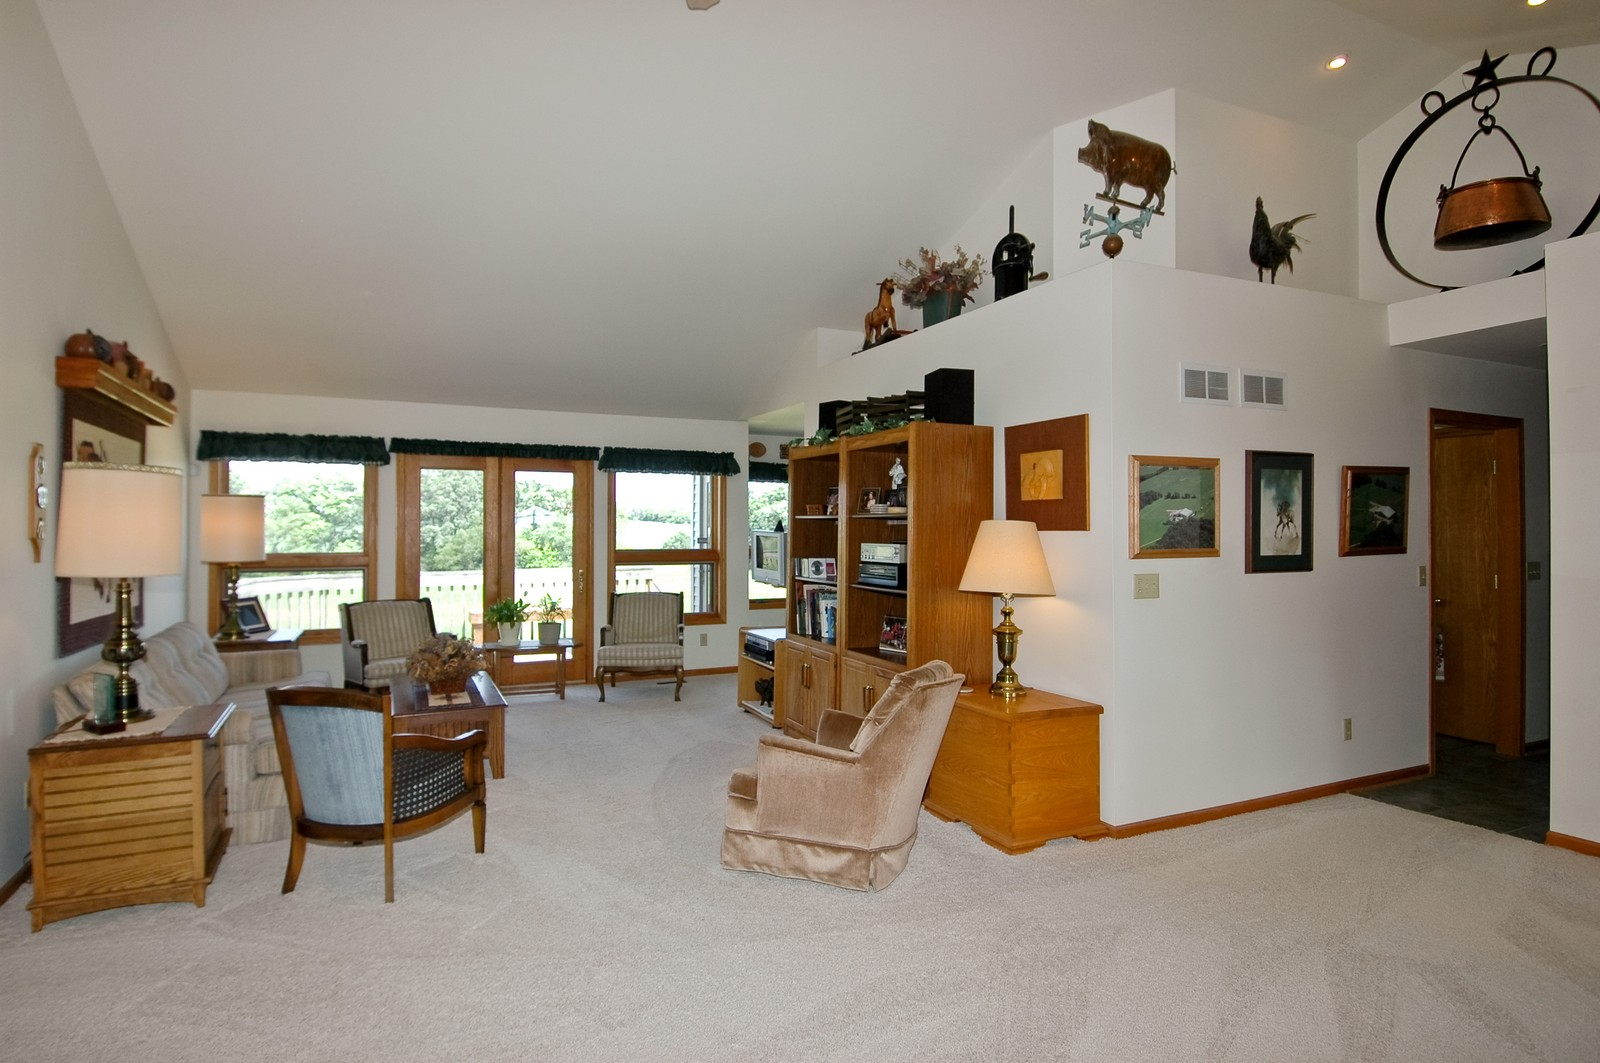 Real Estate Photography - 11785 Coon Trail, Harvard, IL, 60033 - Living Room